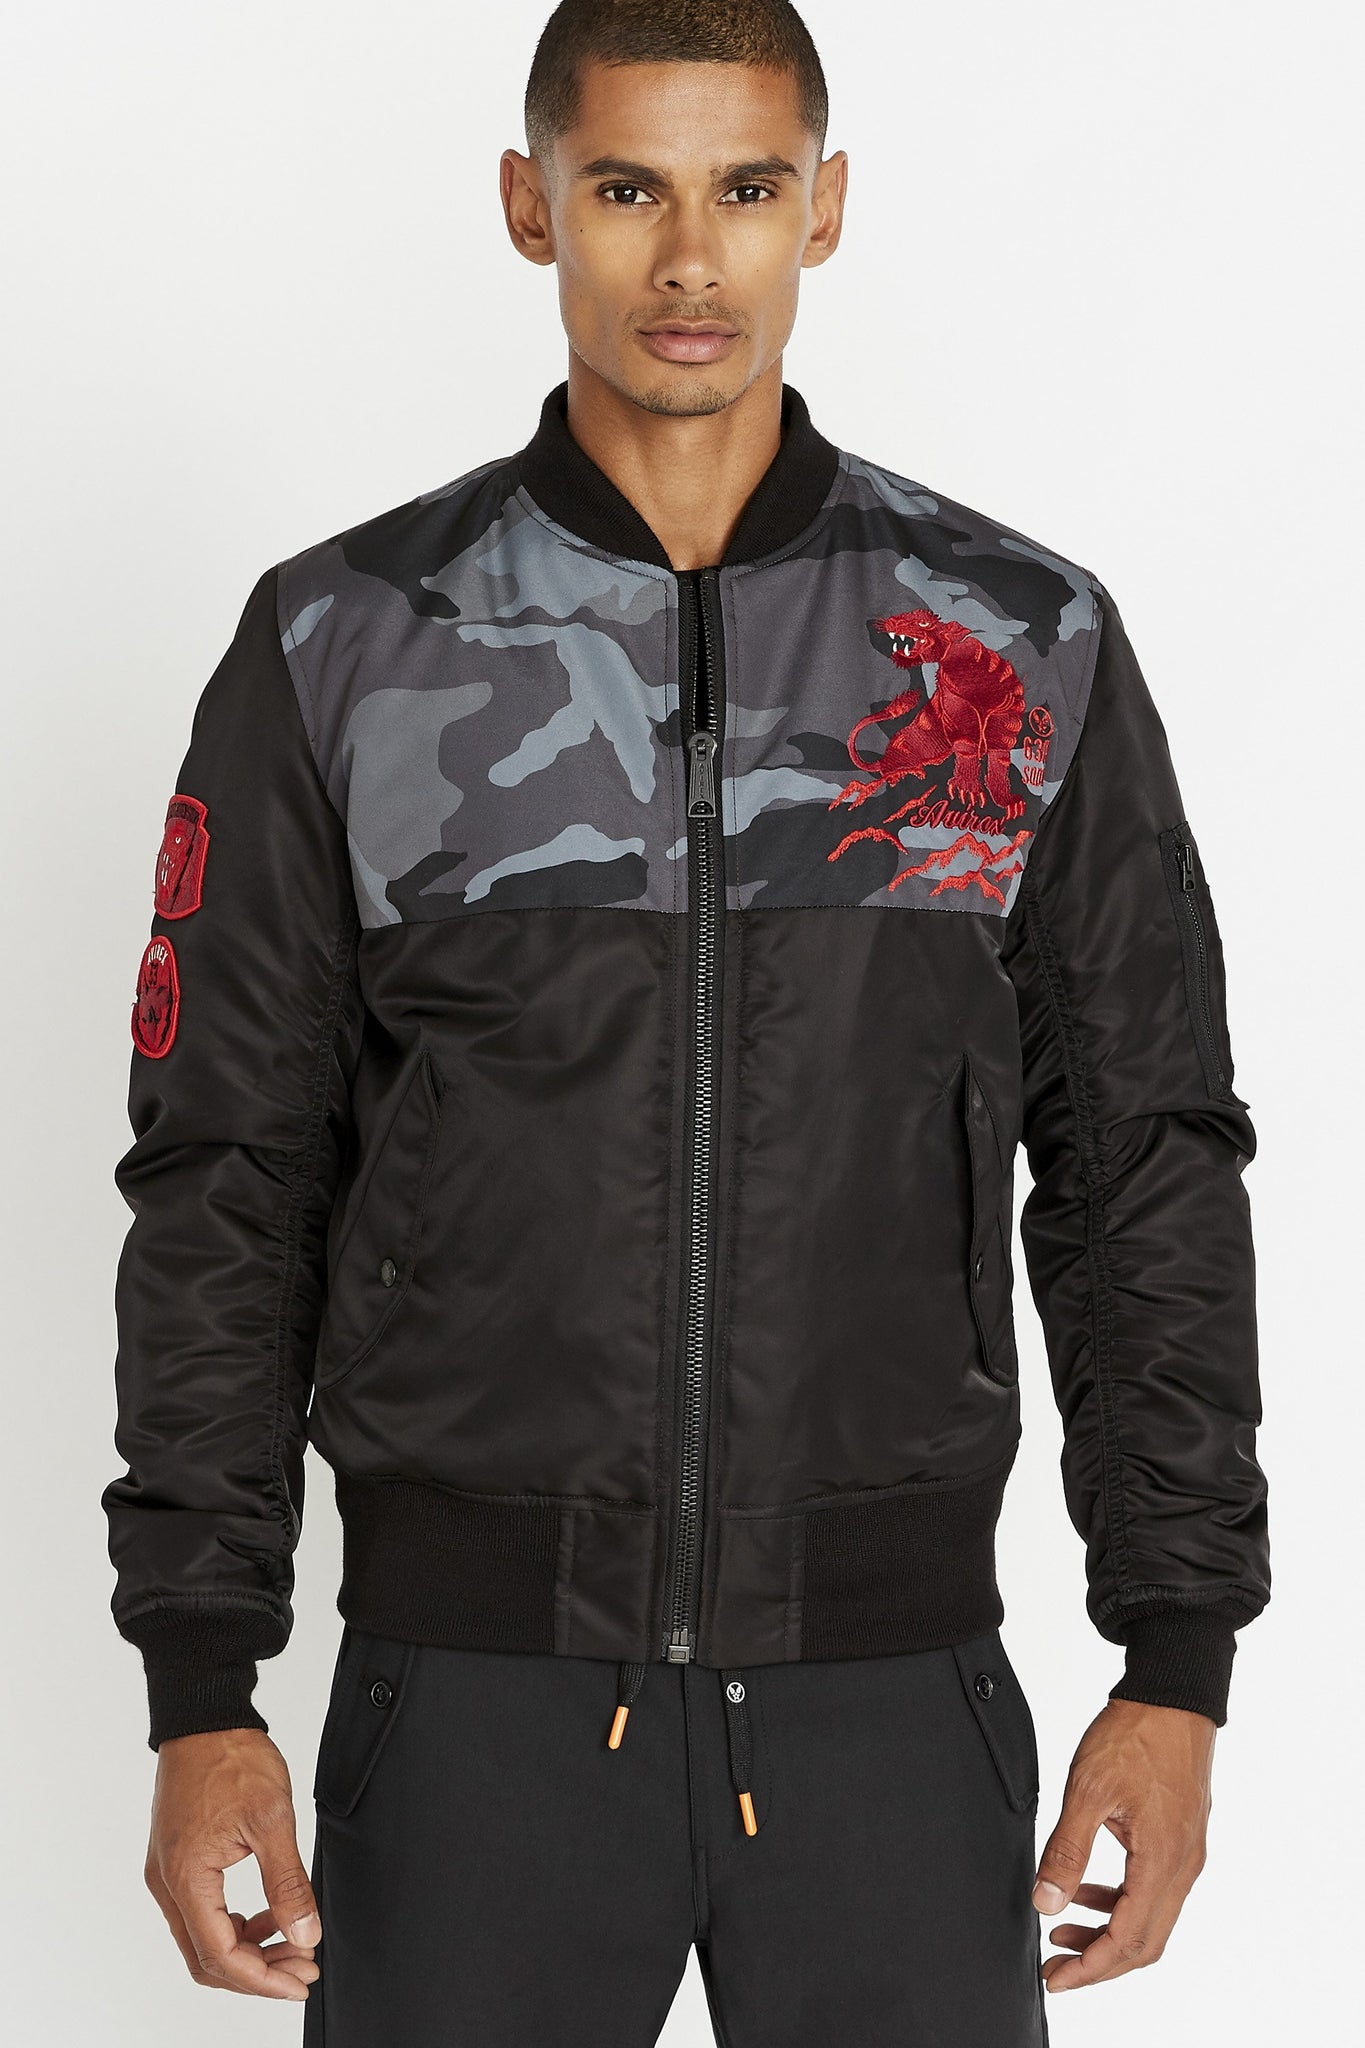 Front view of men wearing a fully zipped black bomber jacket with camo print on the chest and embroidery red panther on the left chest and two side flap pockets on the sides